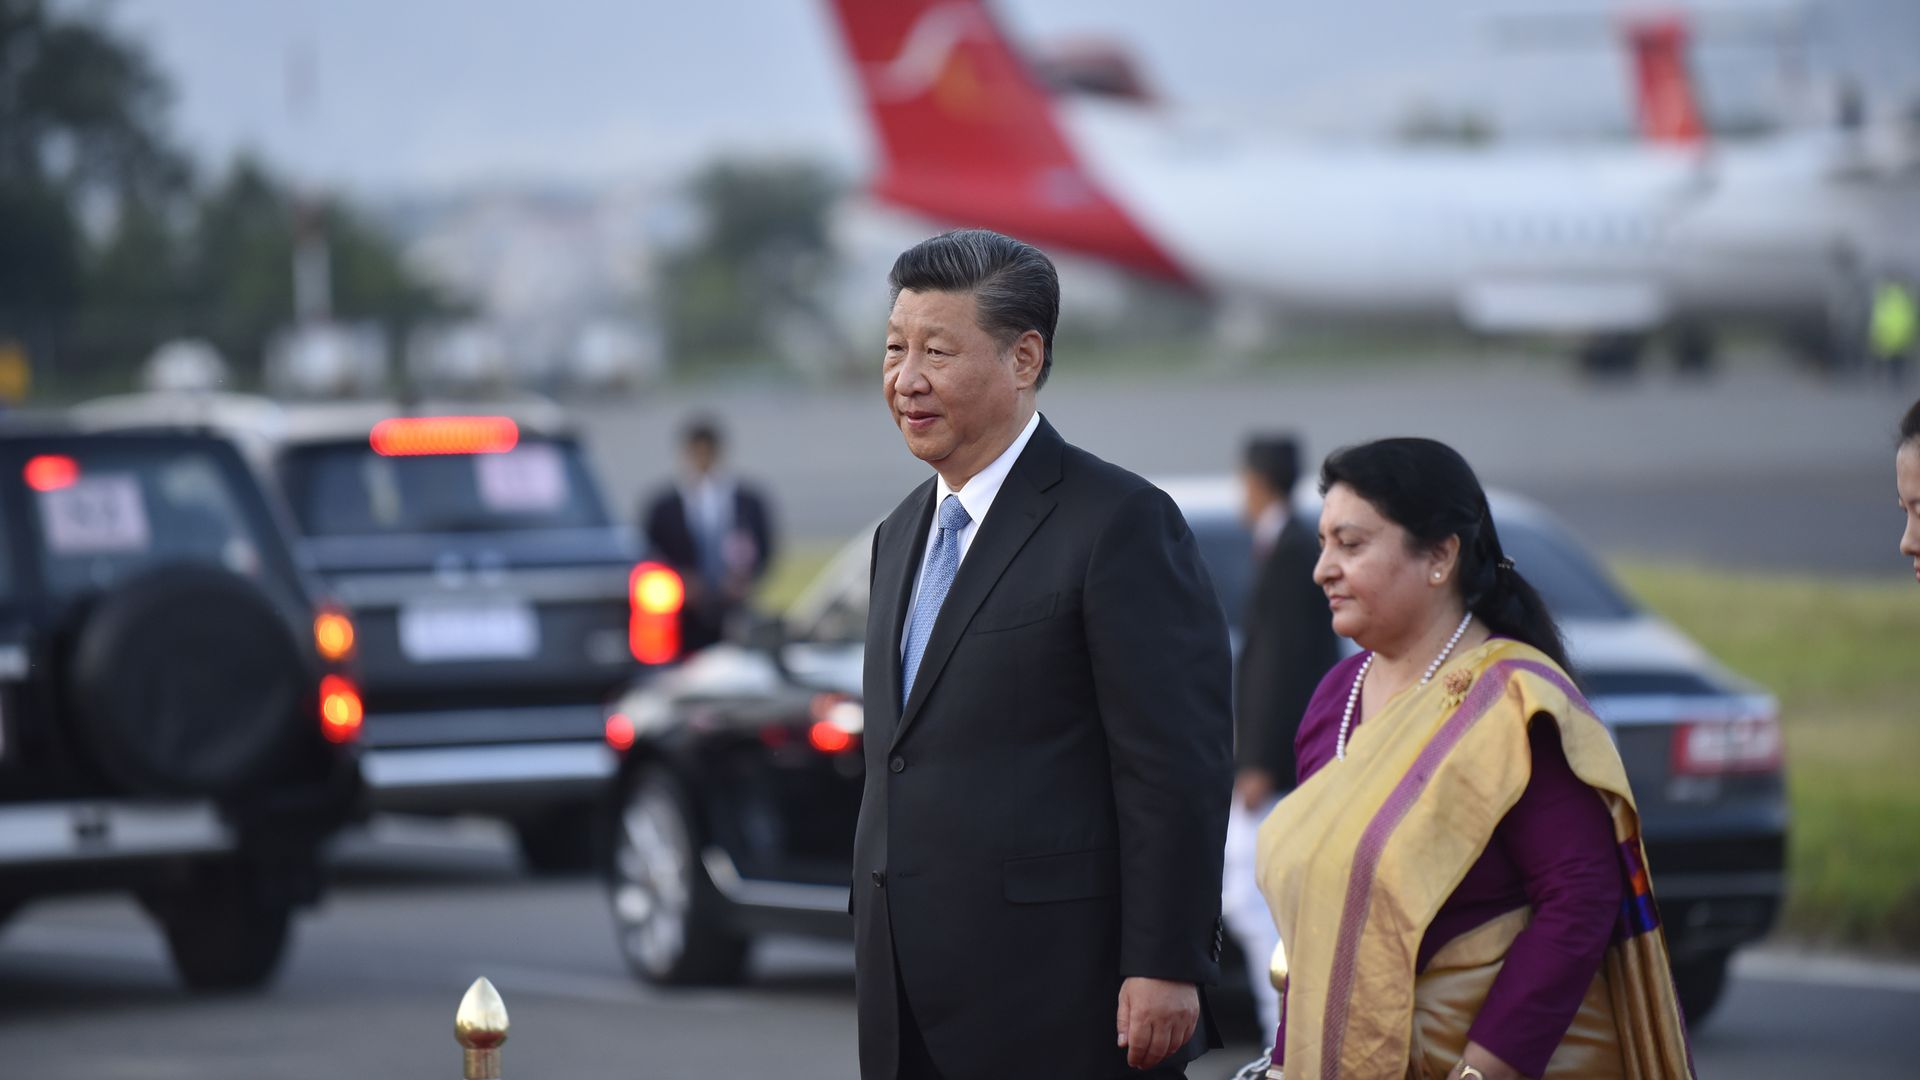 Nepal and China declare themselves strategic partners, everlasting friends